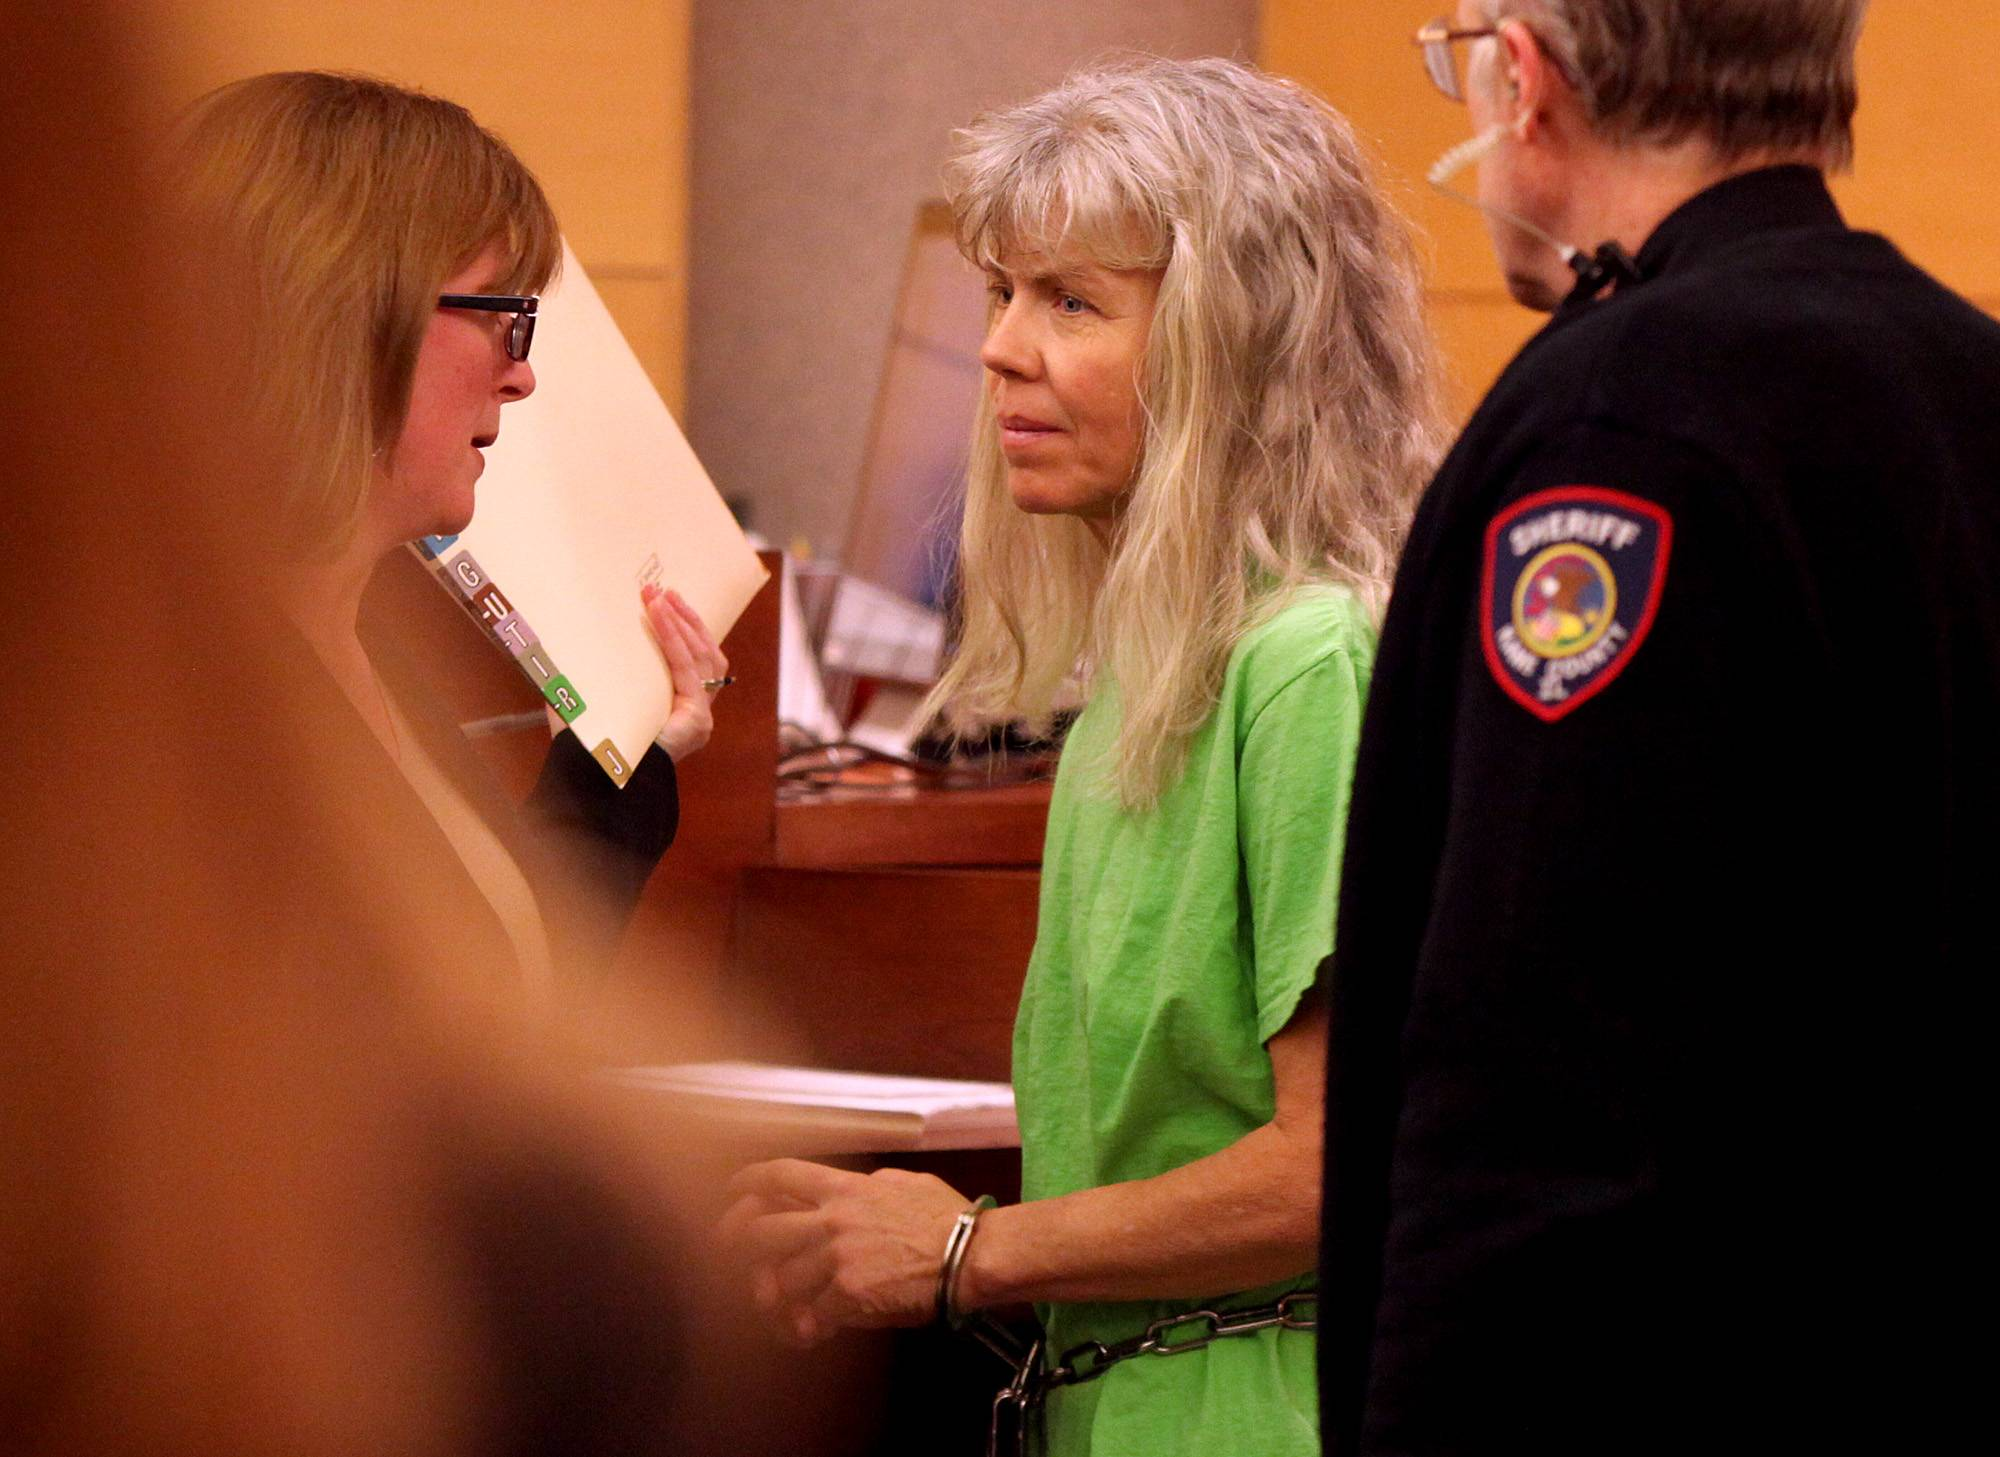 Julia Gutierrez converses Thursday with Kane County Assistant Public Defender Julie Yetter at the Kane County Judicial Center. Gutierrez, 53, of Geneva, faces two counts of first-degree murder in the death of her husband, Eduardo Gutierrez.